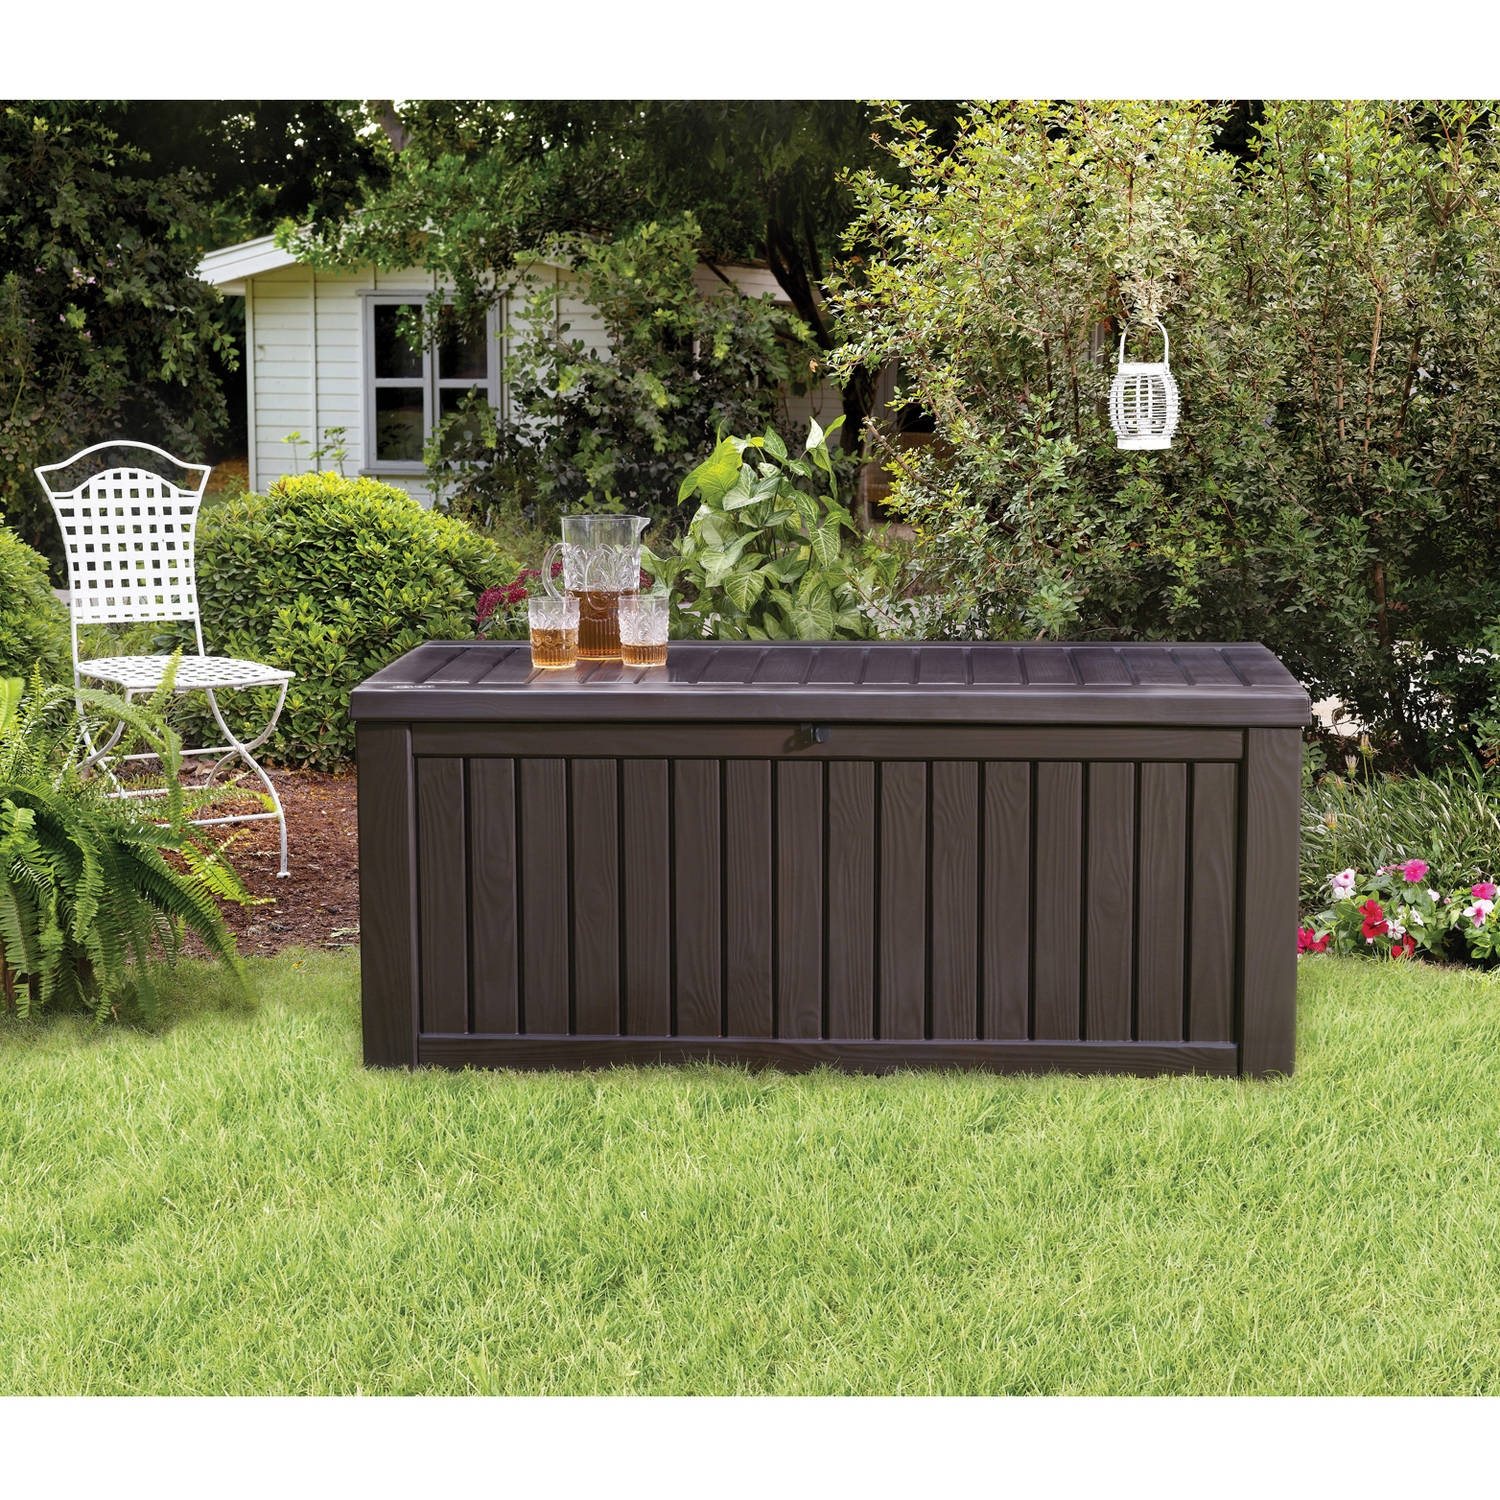 Keter Storage Box | Keter Cushion Box | Keter 150 Gallon Deck Box